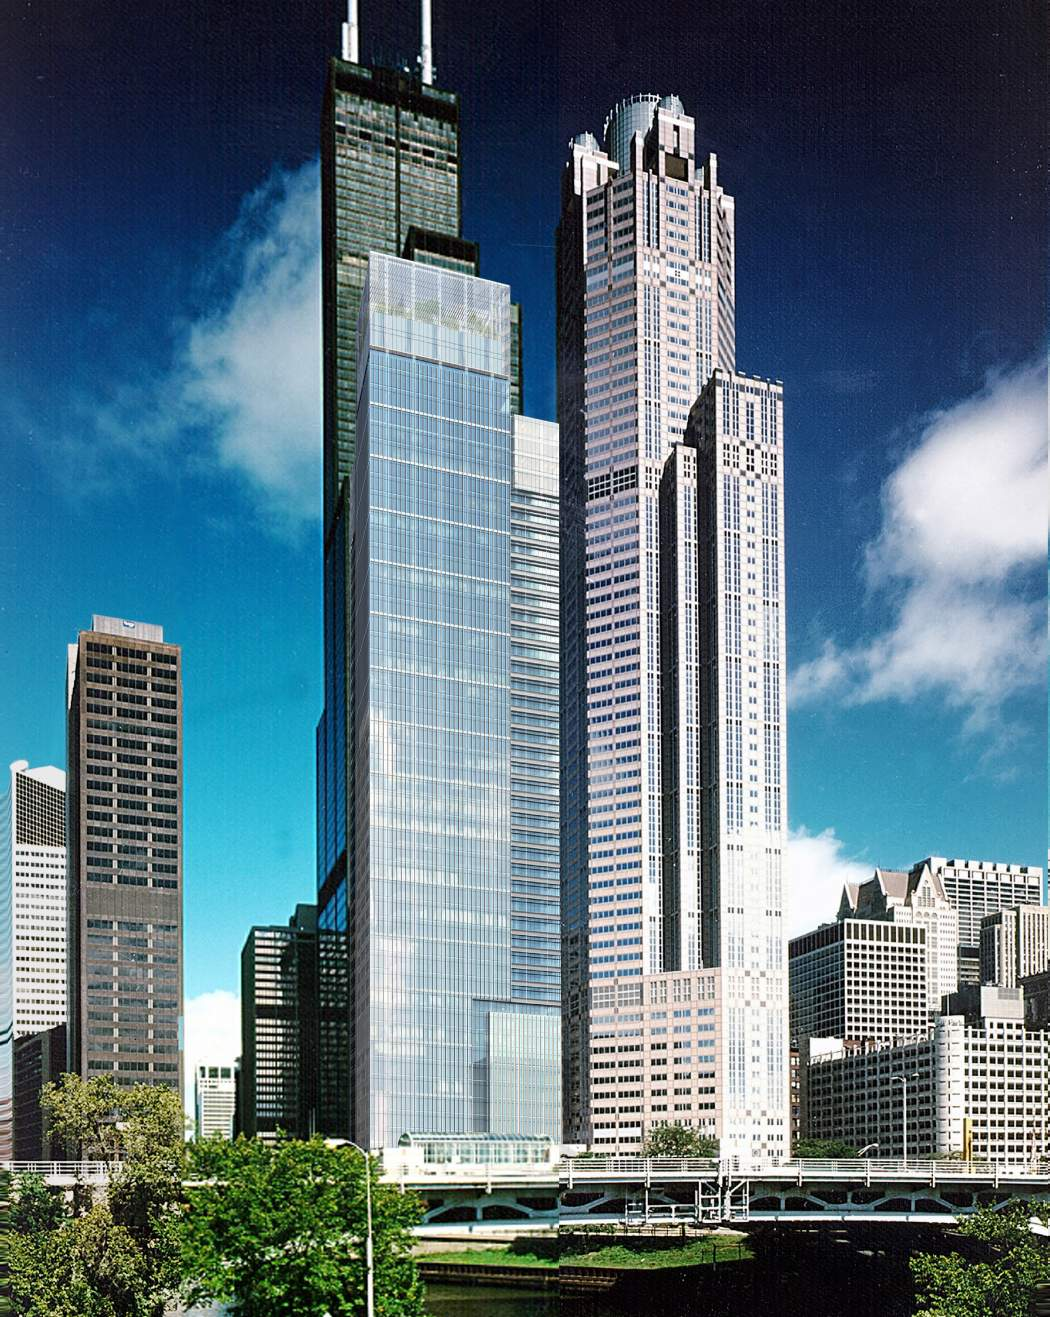 301 & 321 S Wacker - Chicago, IL Developed by MDG, Asset Management by MAM